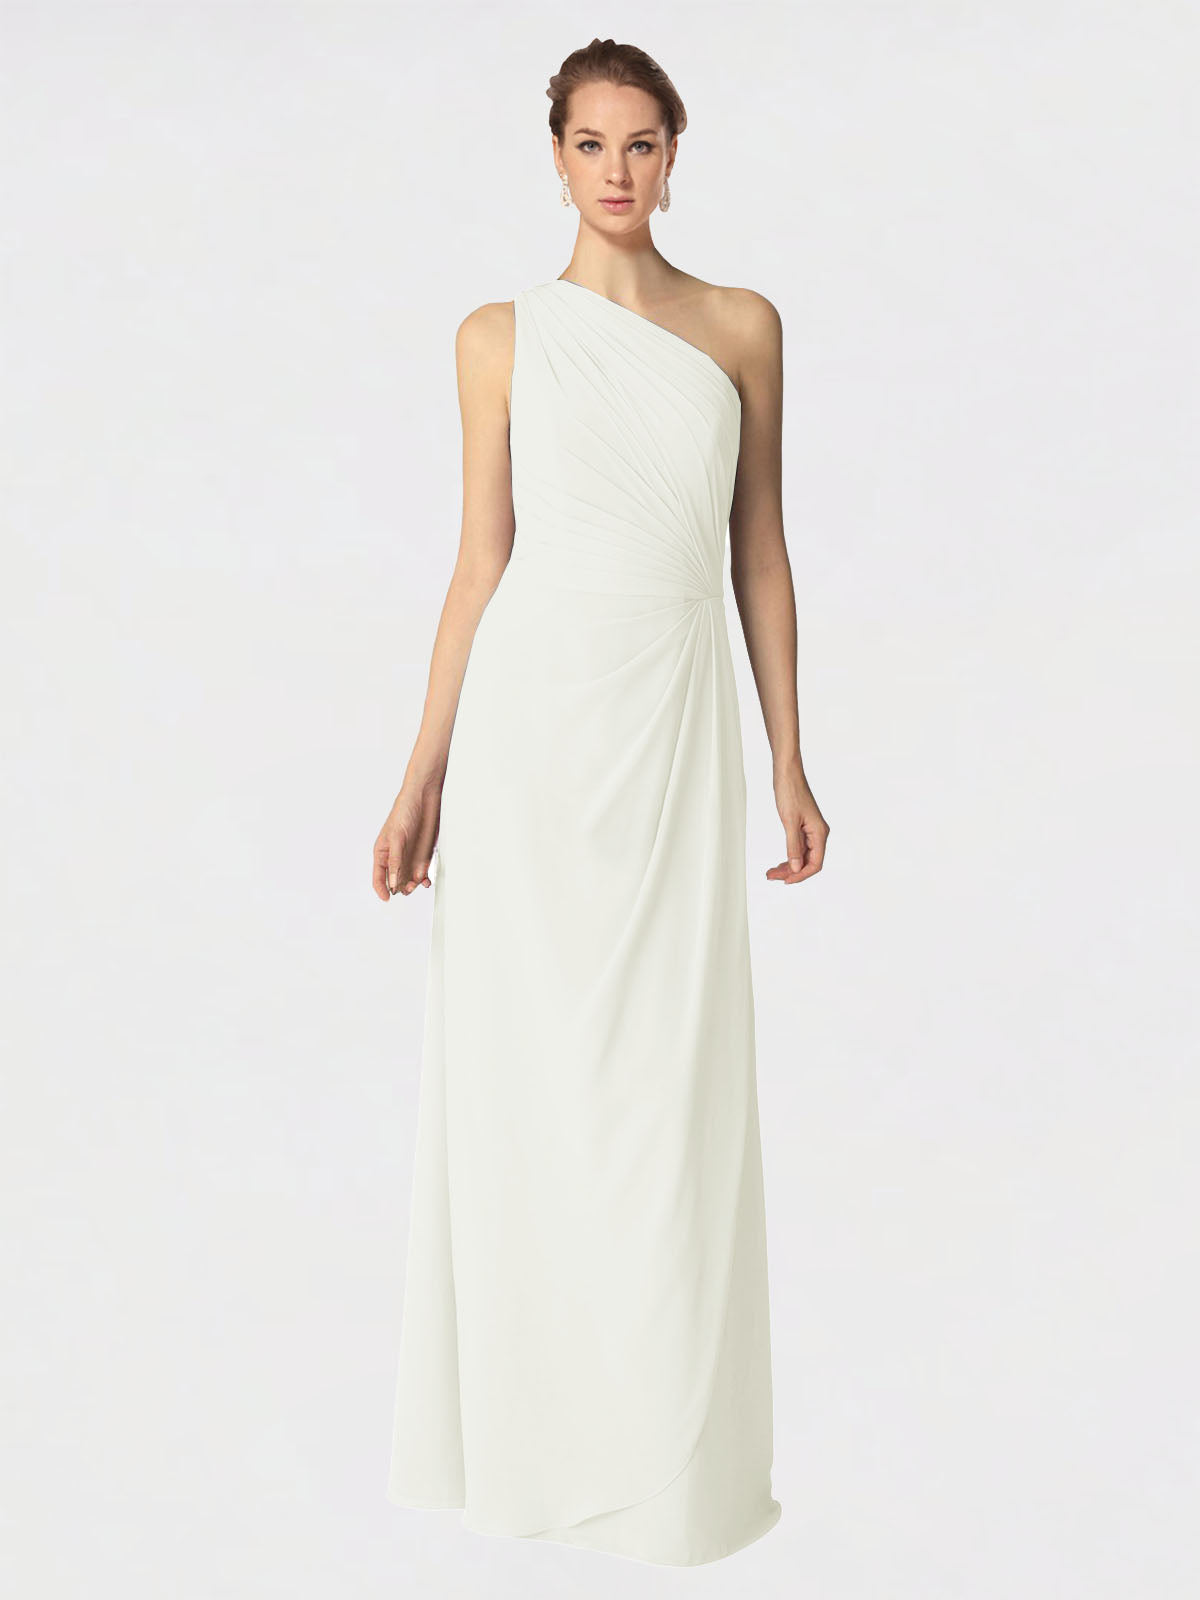 Long A-Line One Shoulder Sleeveless Ivory Chiffon Bridesmaid Dress Aurora